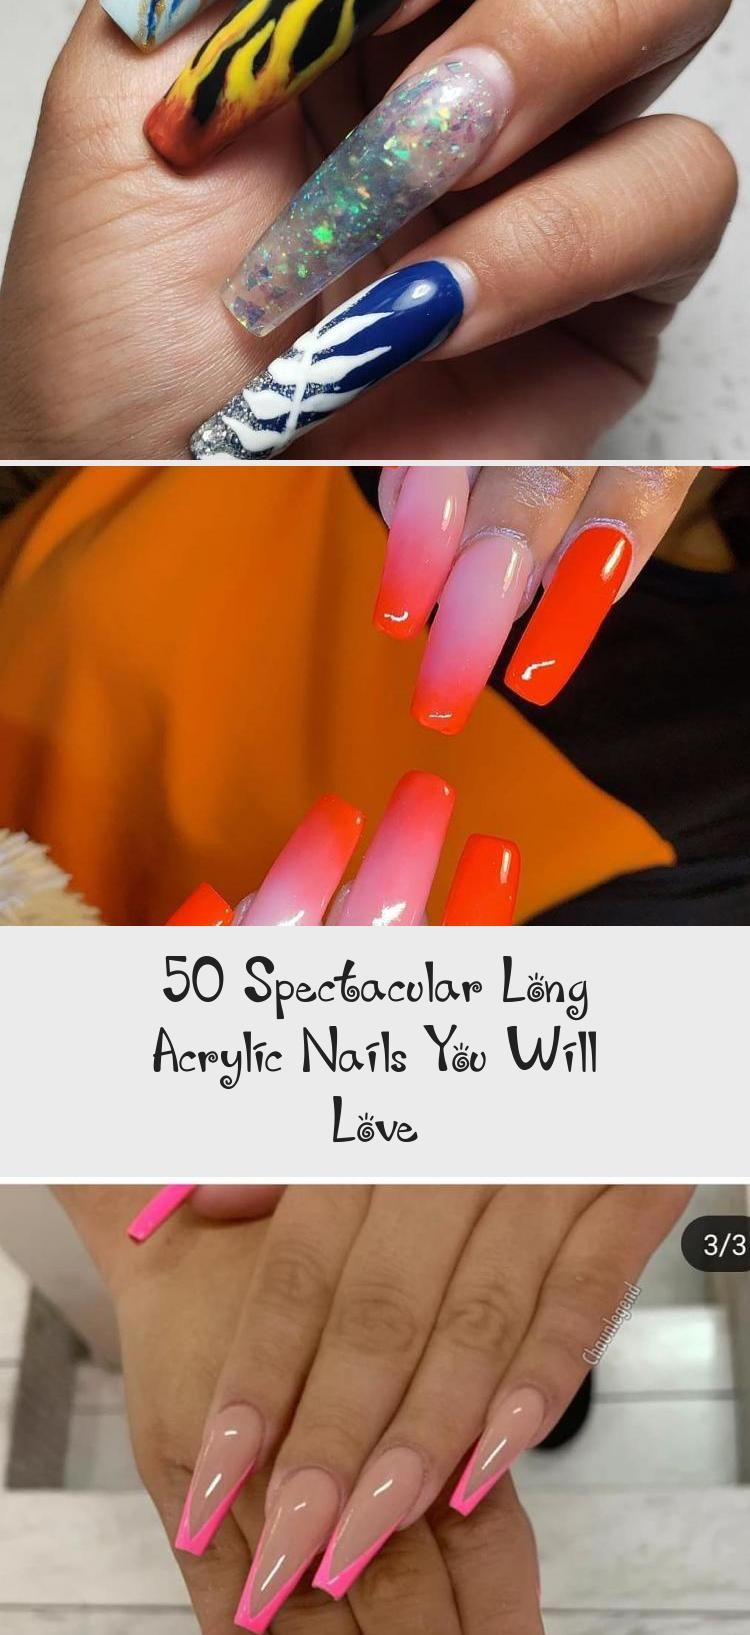 50 Spectacular Long Acrylic Nails You Will Love Long Acrylic Nails Acrylic Nails White Acrylic Nails